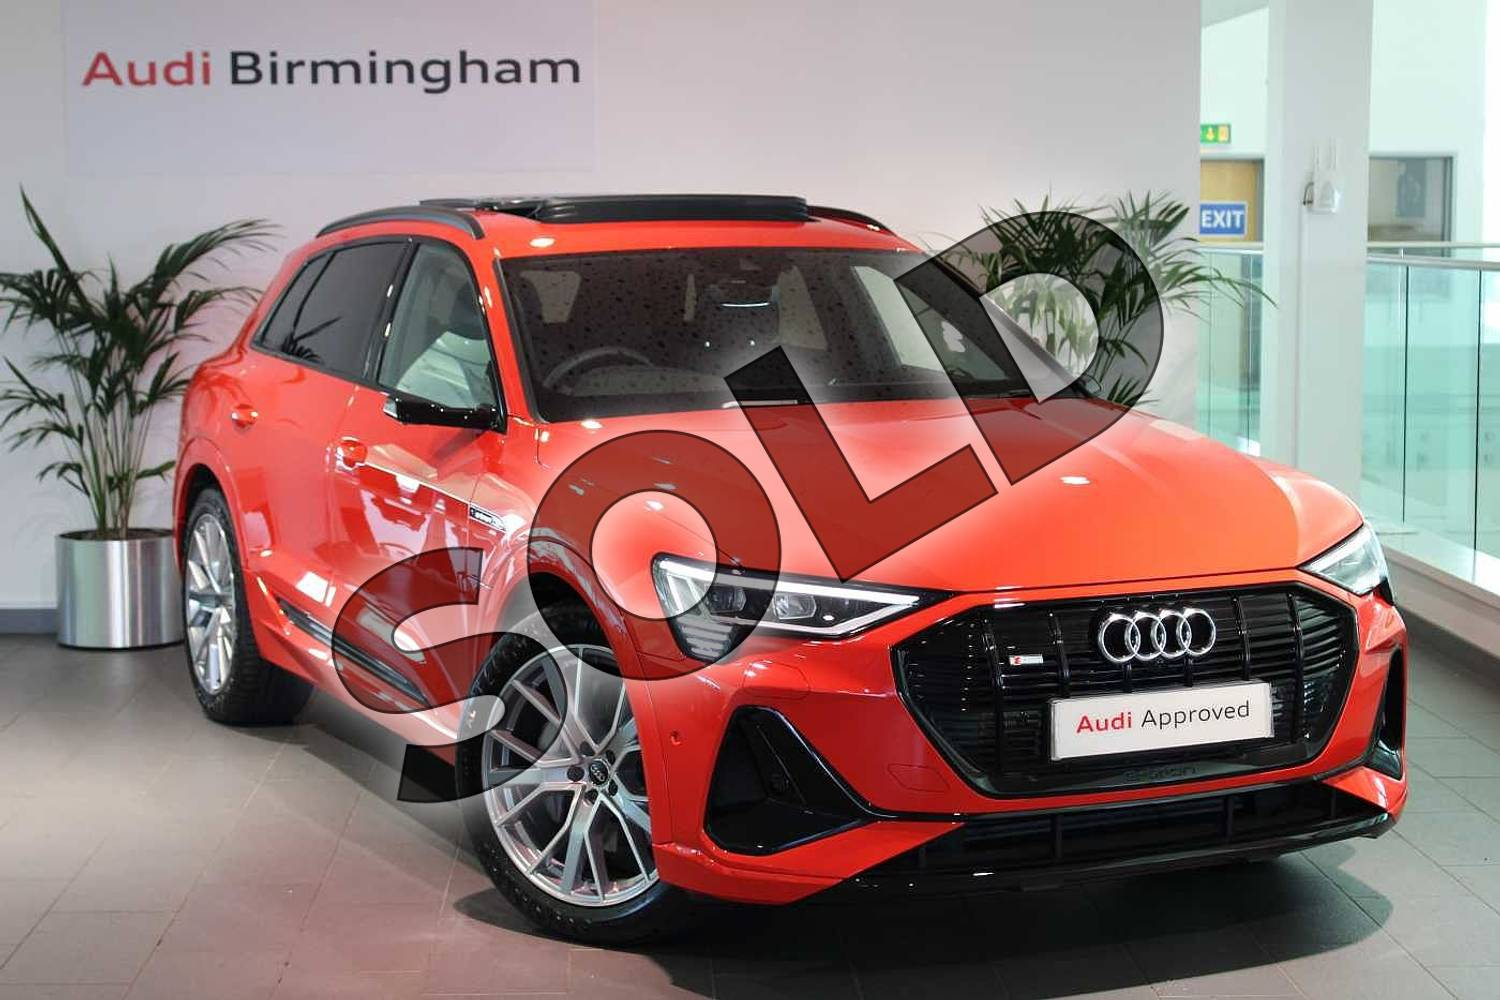 2020 Audi e-tron Estate Special Editions 230kW 50 Quattro 71kWh Launch Edition 5dr Auto in Catalunya Red Metallic at Birmingham Audi